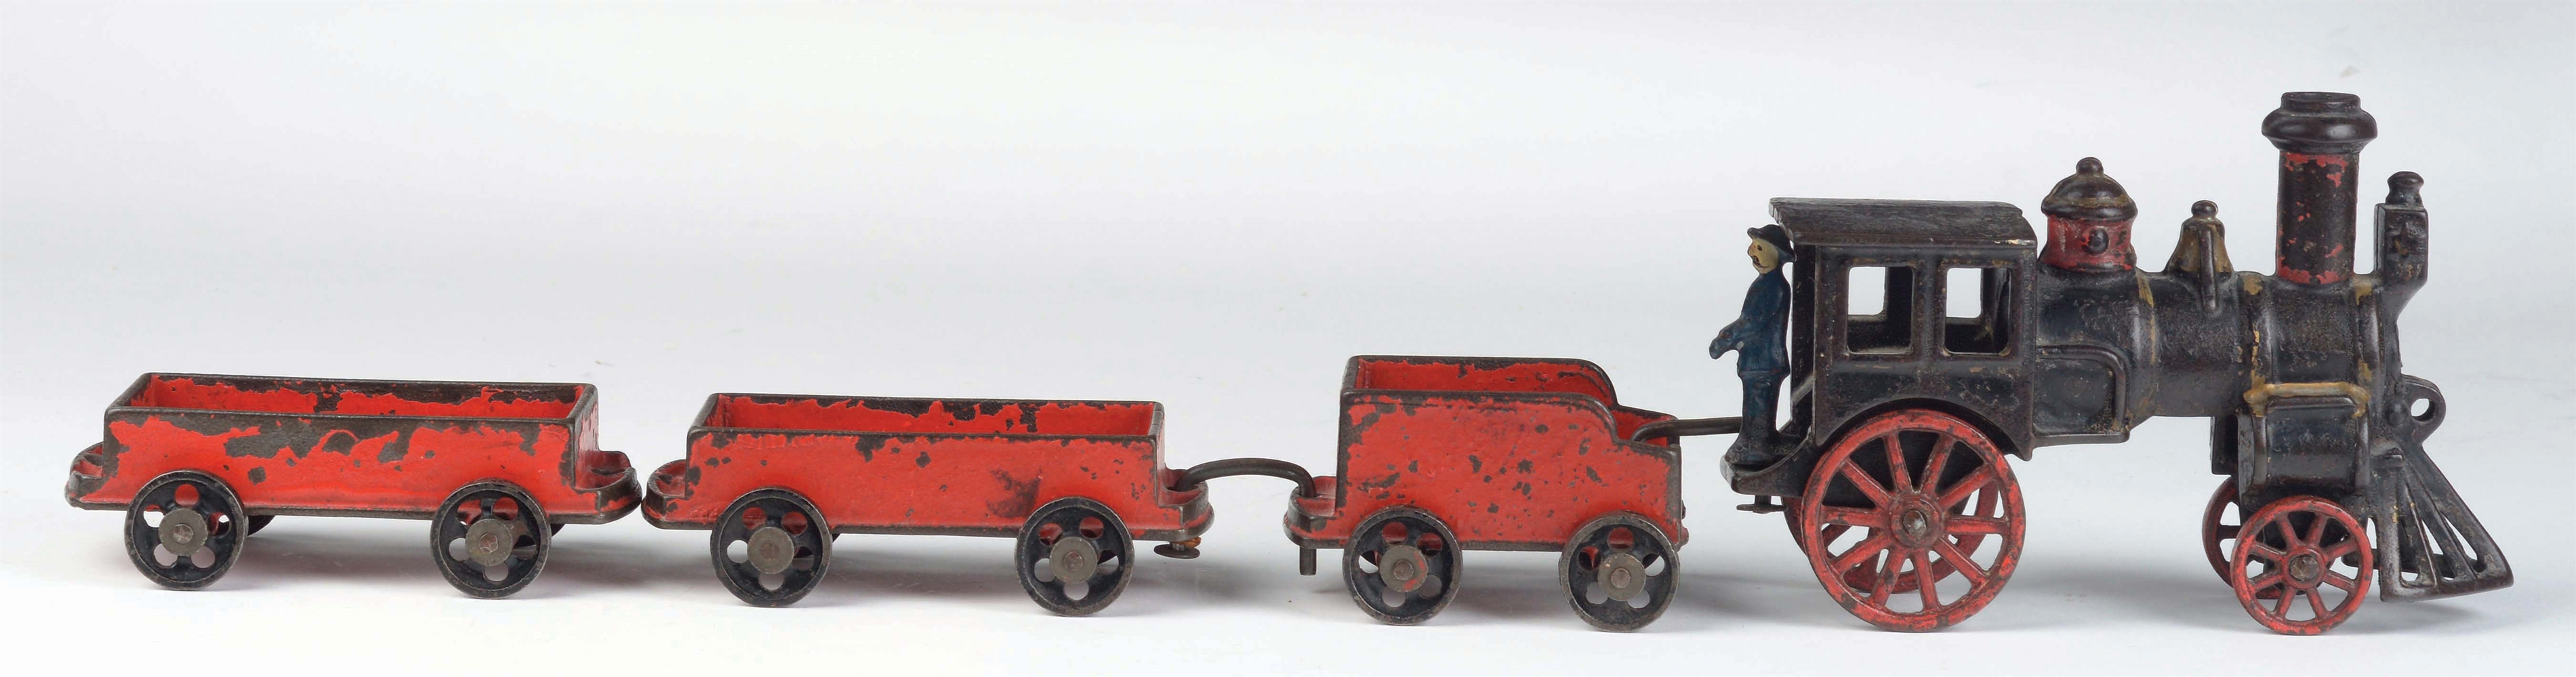 CAST-IRON AMERICAN MADE FREIGHT TRAIN SET.